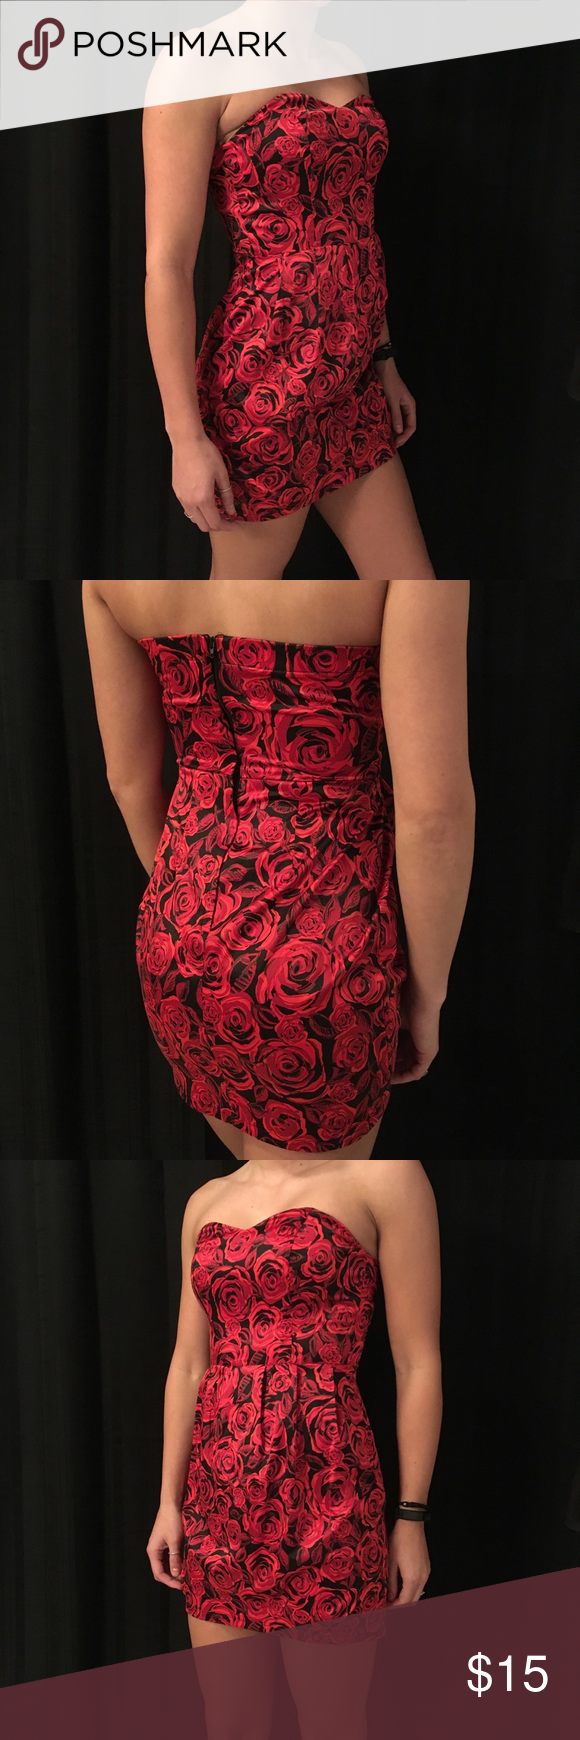 🌹 Strapless Rose Dress Charlotte Russe Red Rose Strapless Dress. Size: S. Condition: Excellent. Charlotte Russe Dresses Strapless